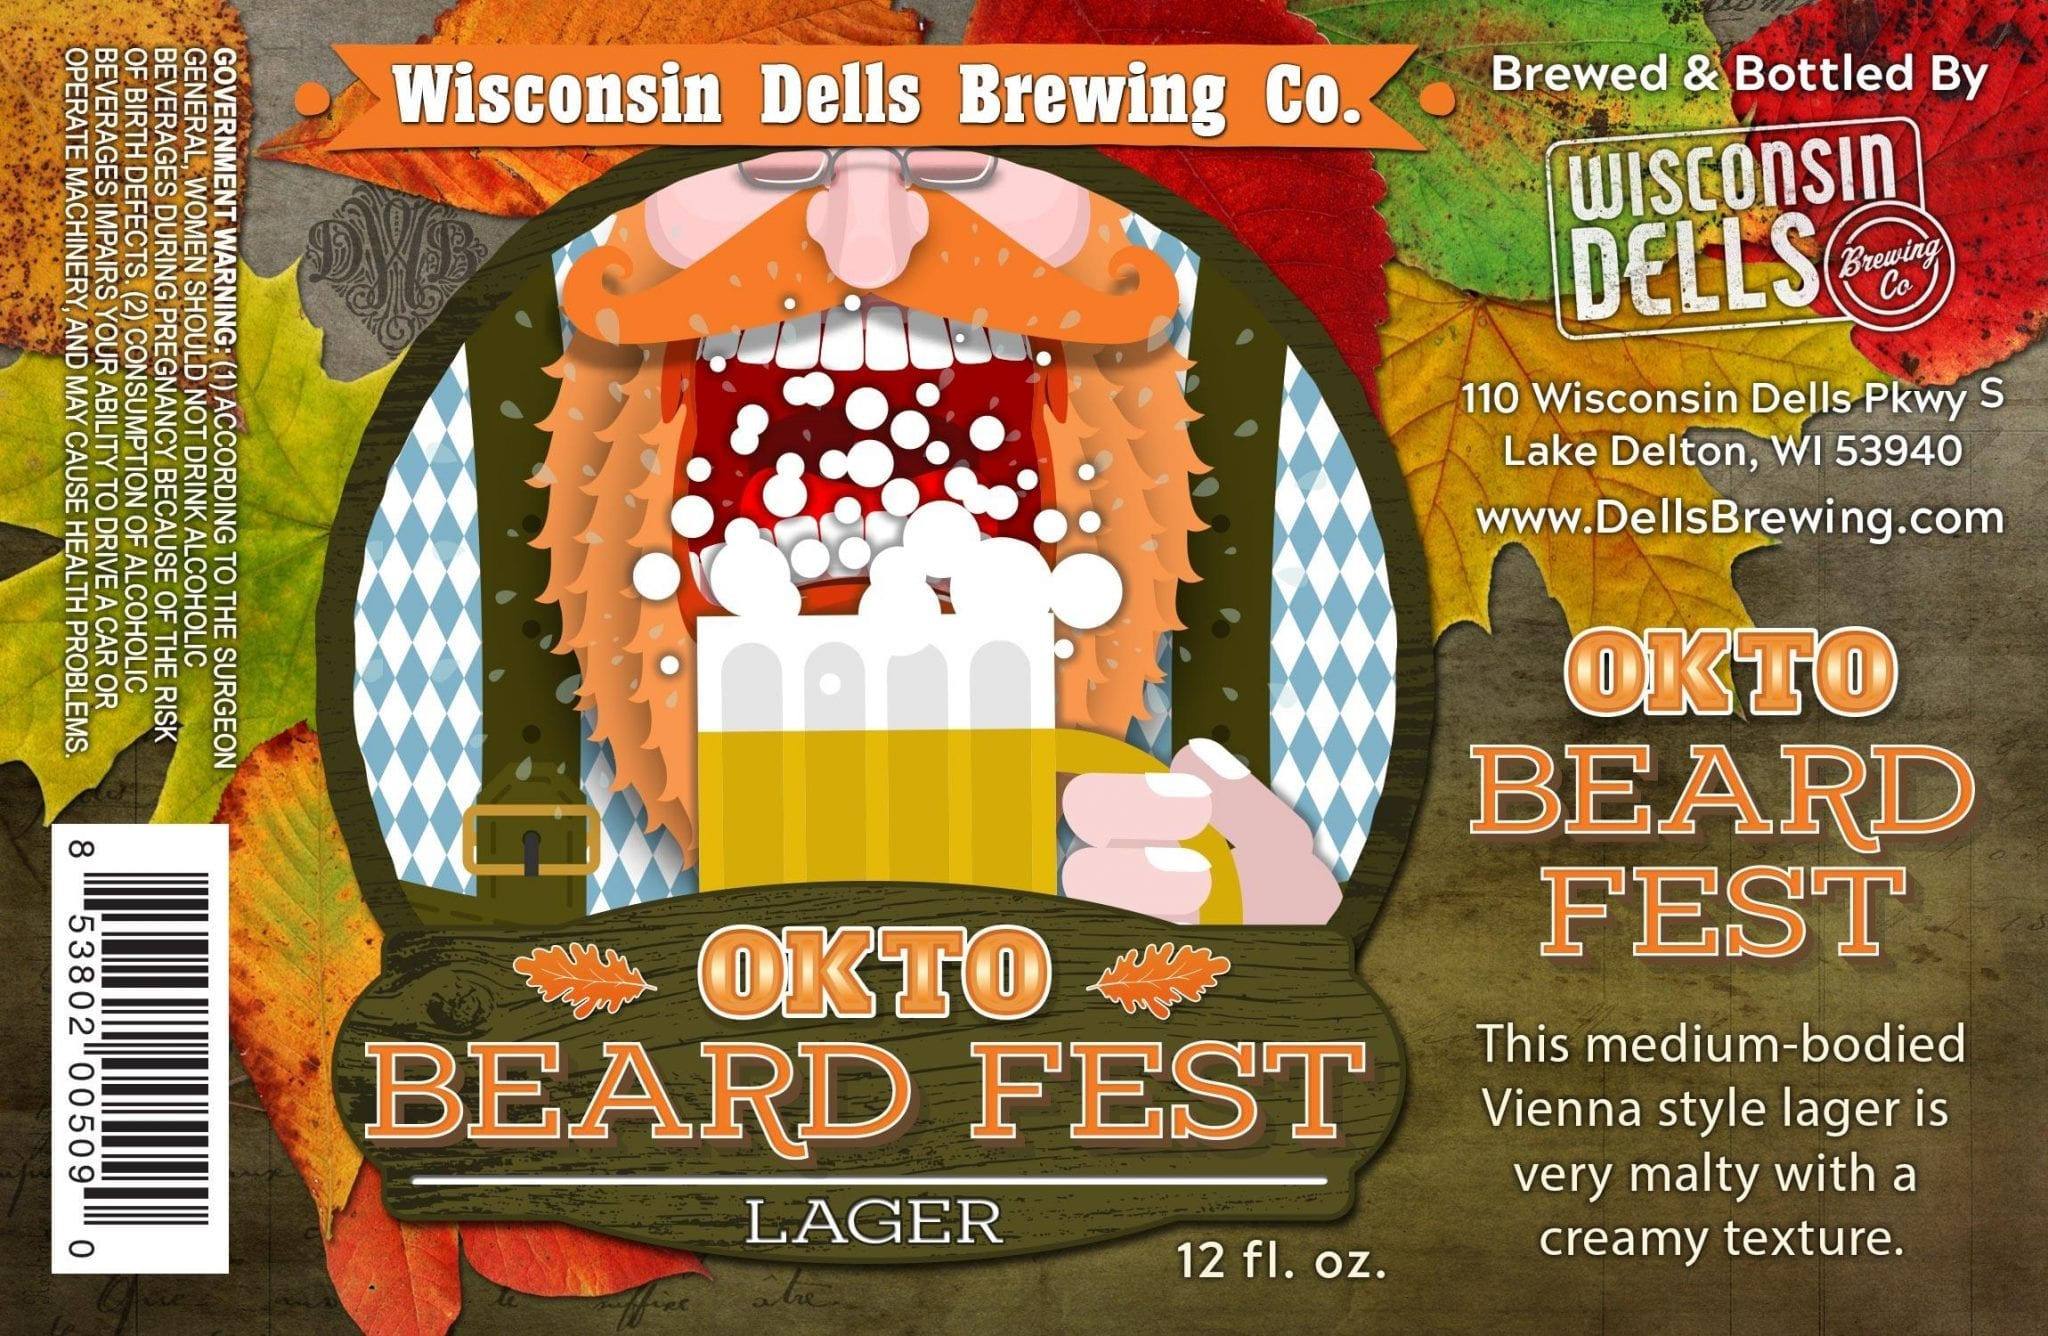 Wisconsin Dells Brewing Co. Okto Beard Fest Label